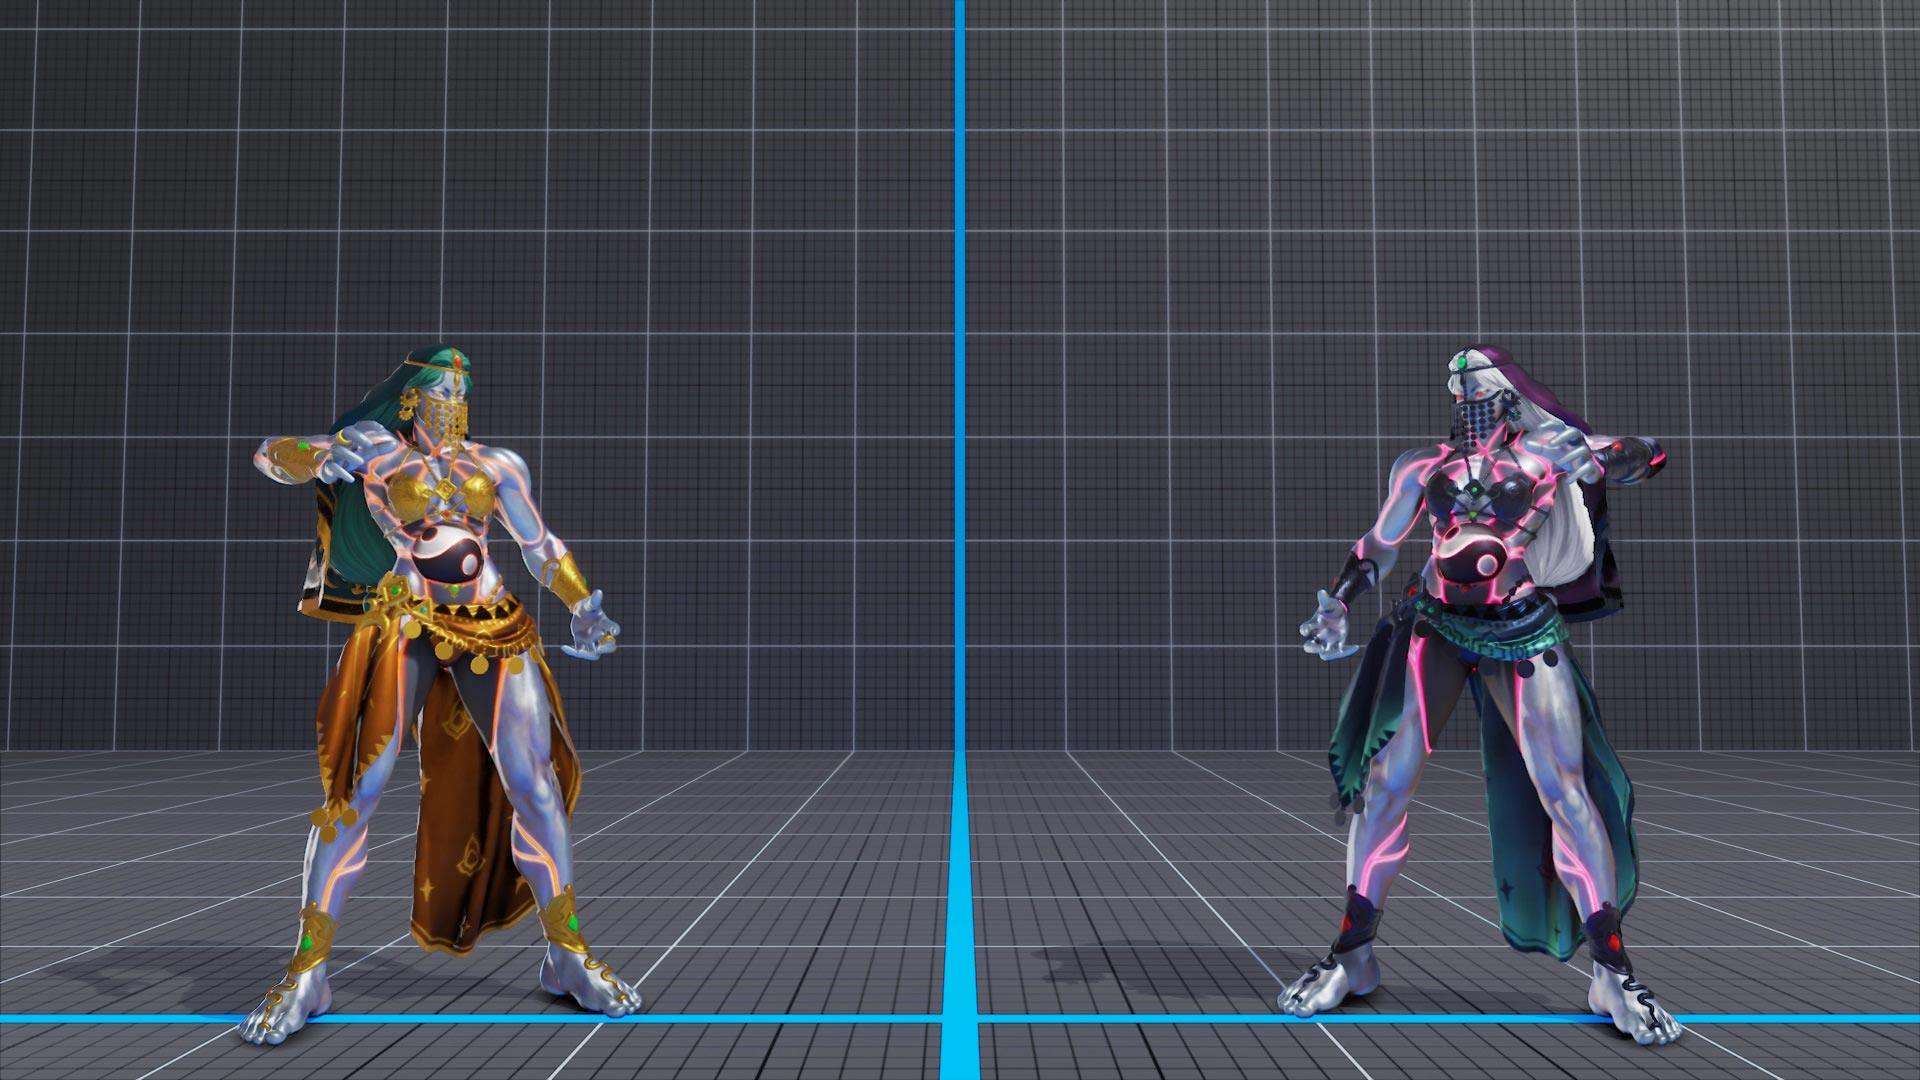 Seth new CPT costume colors 3 out of 5 image gallery